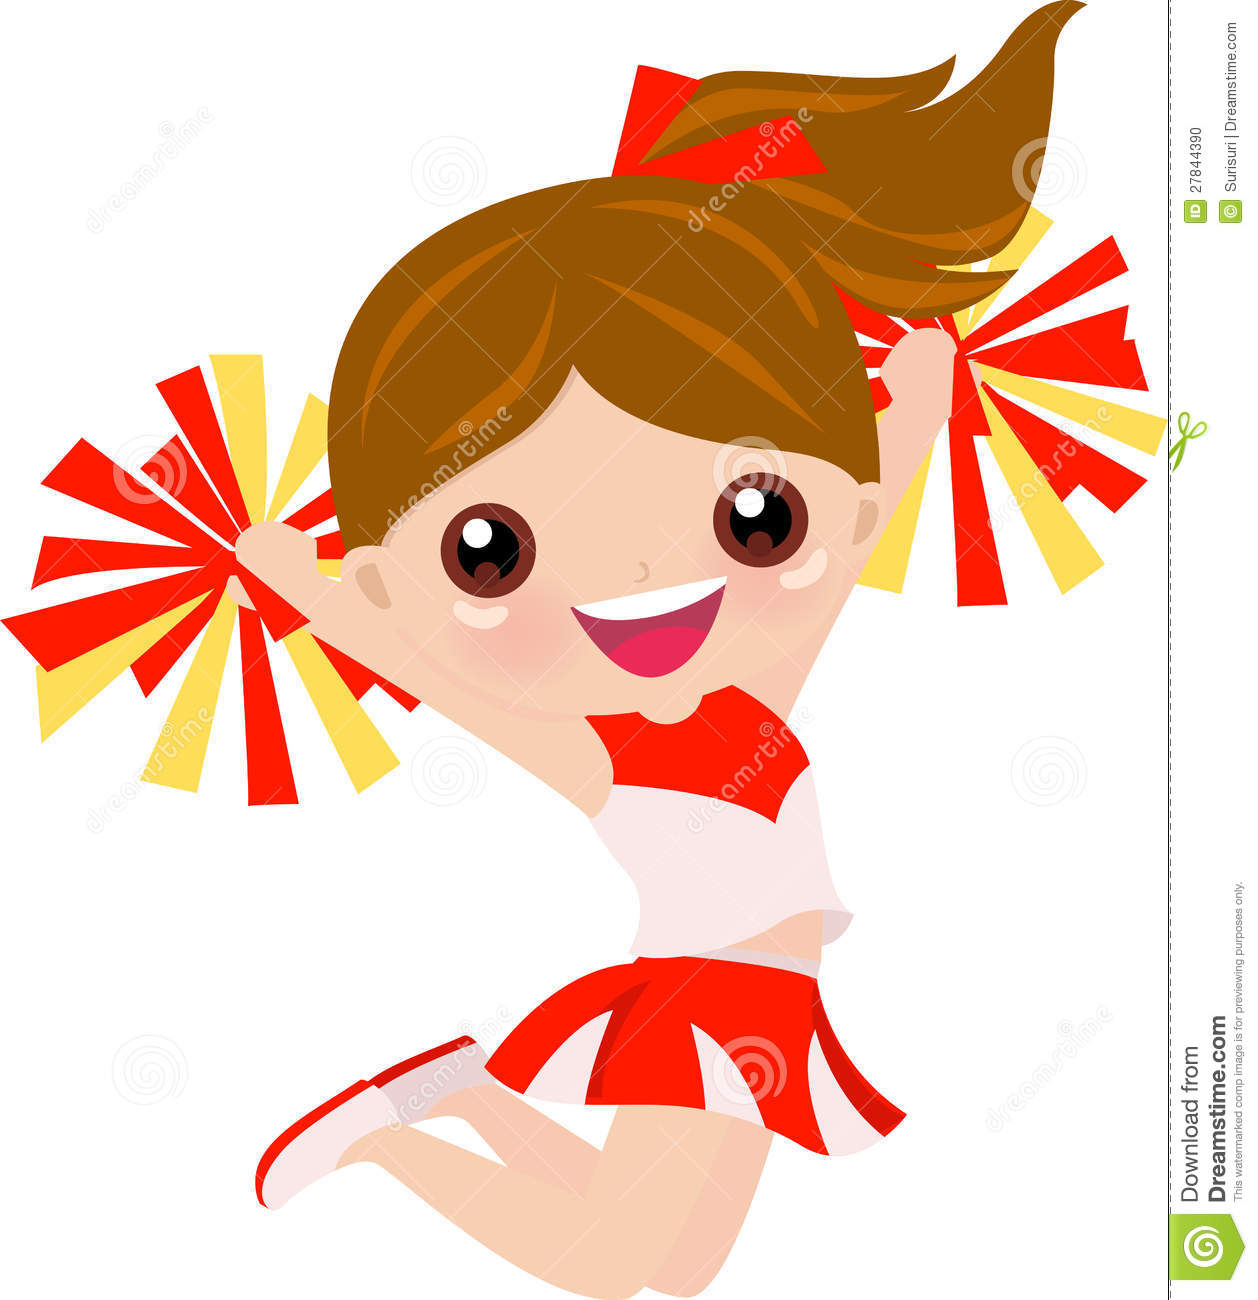 Cheerleader animated clipart black and white download Cartoon Cheerleading Images | Free download best Cartoon ... black and white download